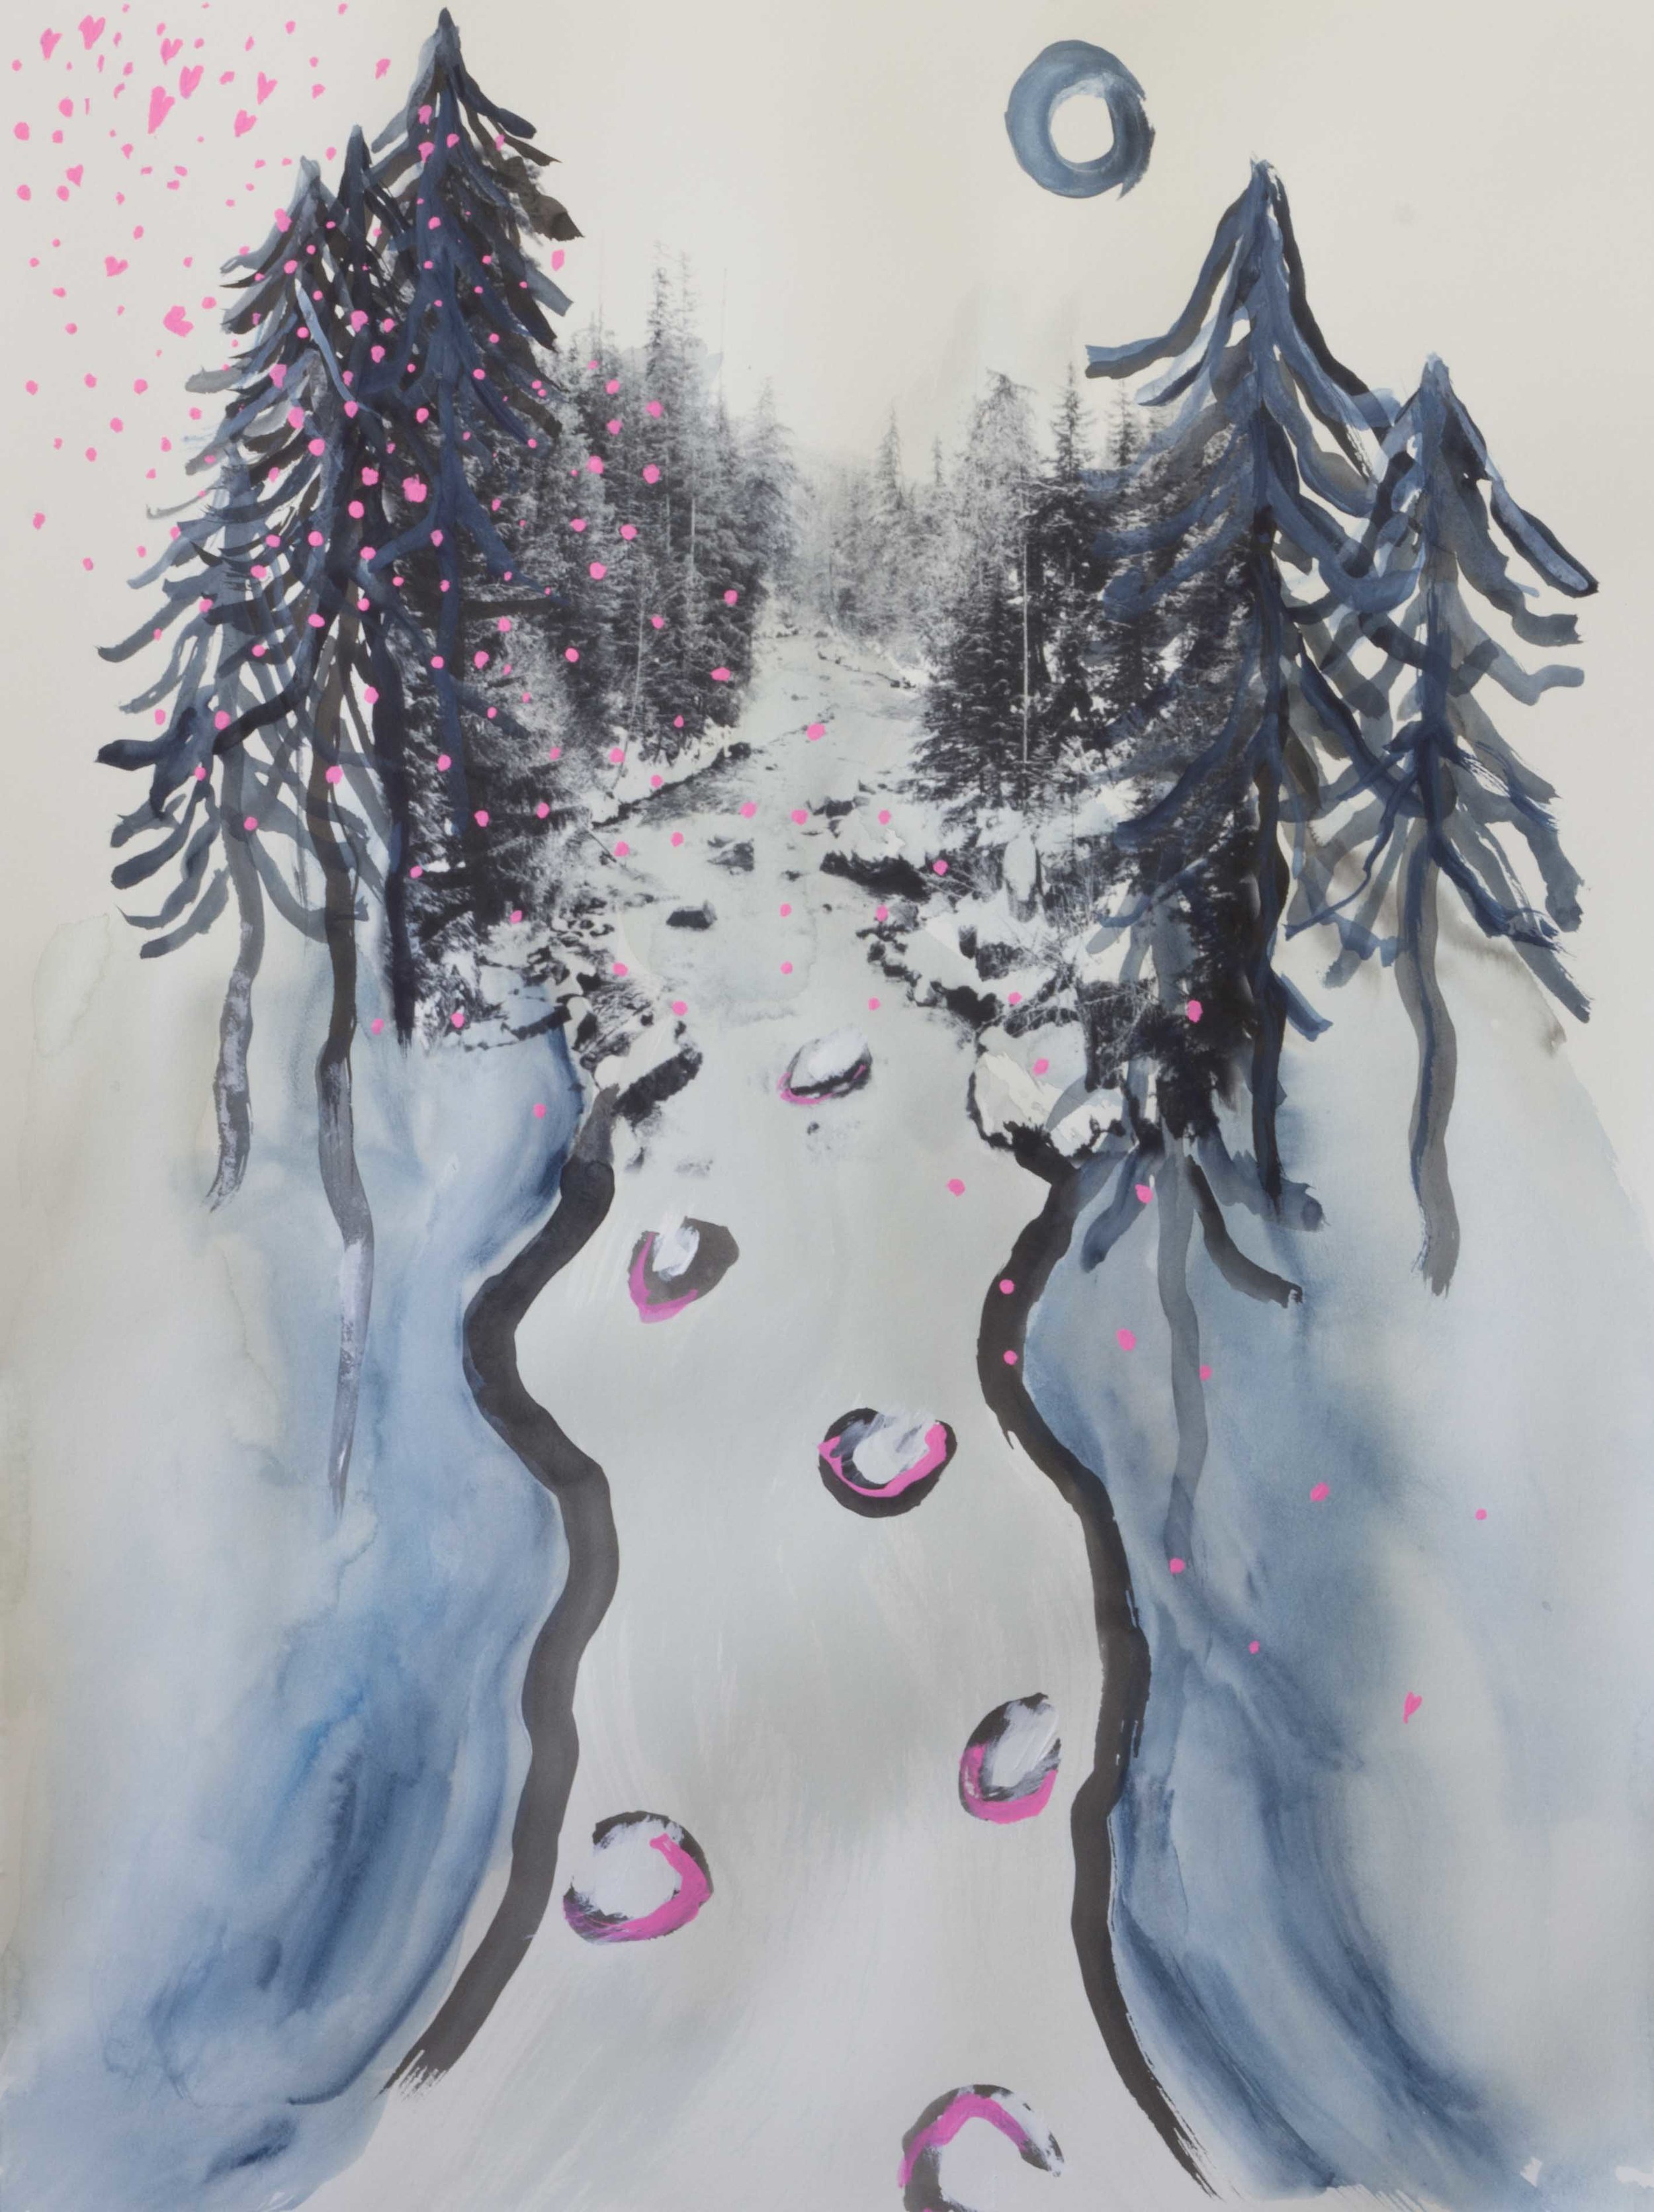 The year that winter never came so It snowed cherry blossoms instead 2 - 22x30 unframed